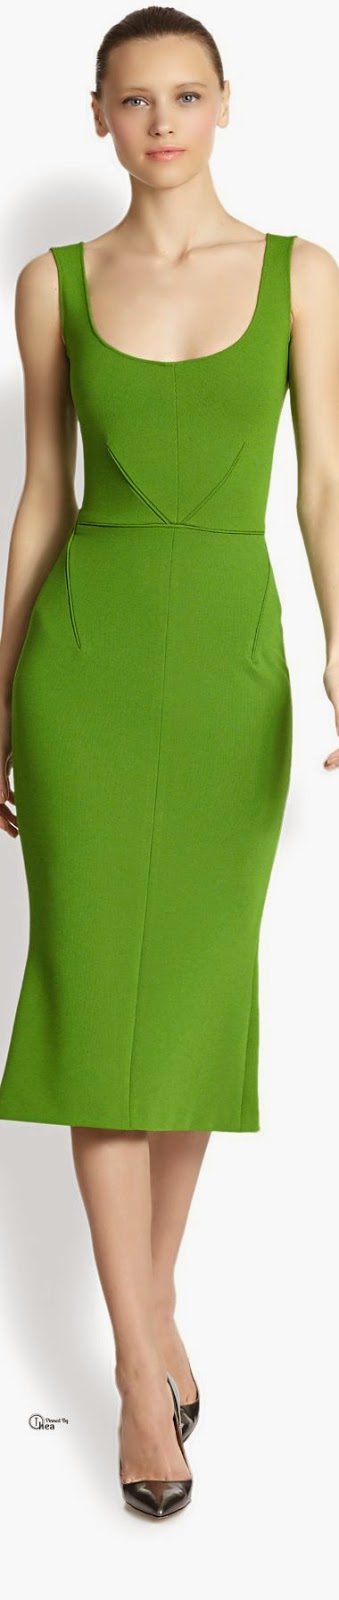 Zac Posen ● Green Flared Midi Dress